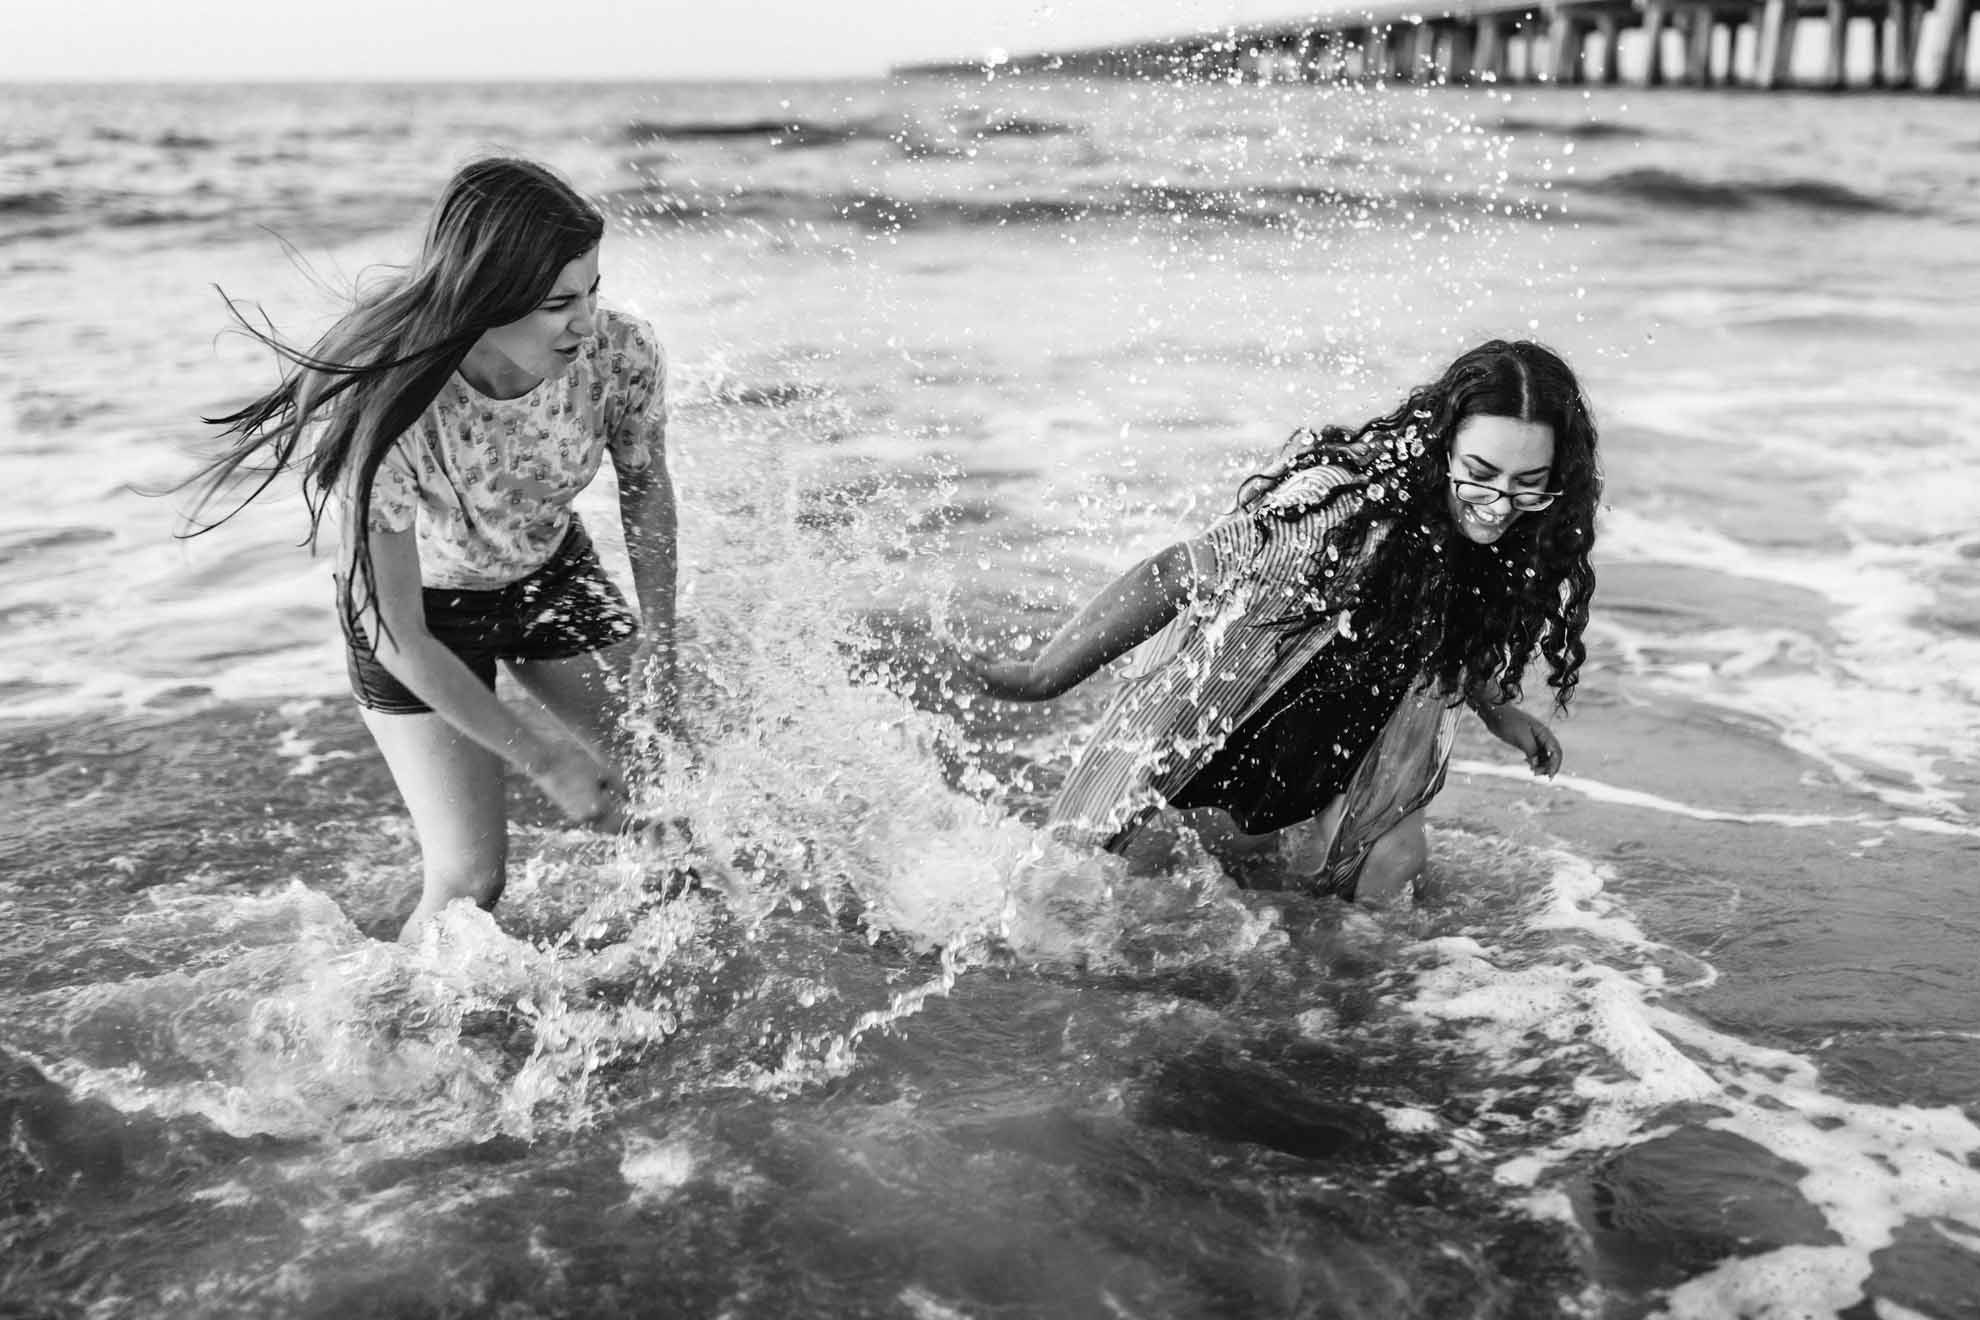 Xiaoqi-Li-Photography Virginia Beach USA American hiking lesbian same-sex two brides engagement proposal Dancing With Her queer publication magazine